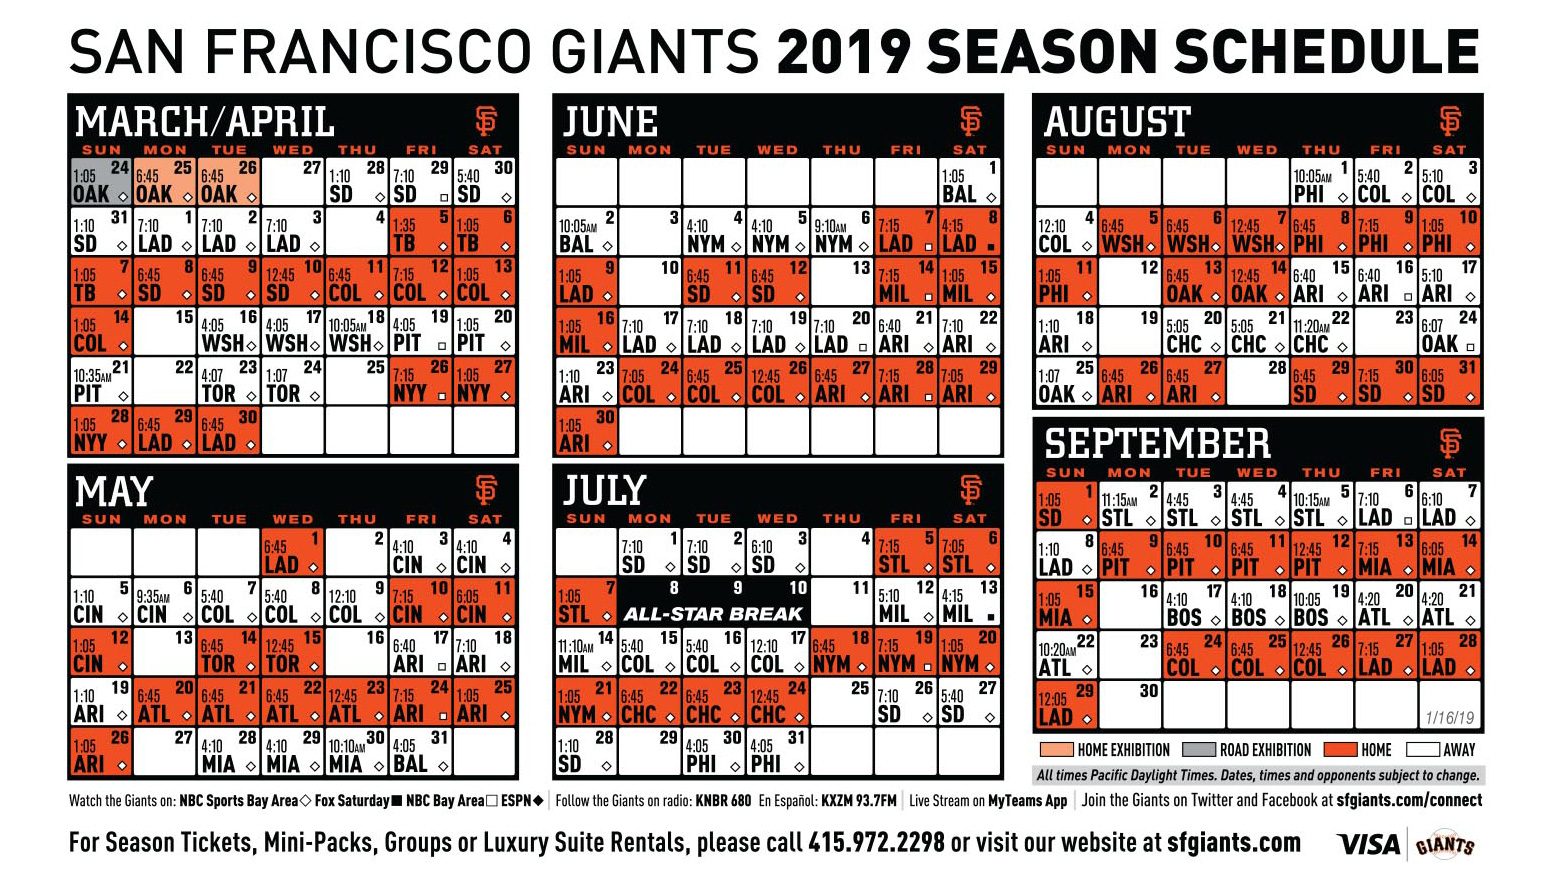 image about Atlanta Braves Tv Schedule Printable titled Giants 2019 Printable Program San Francisco Giants